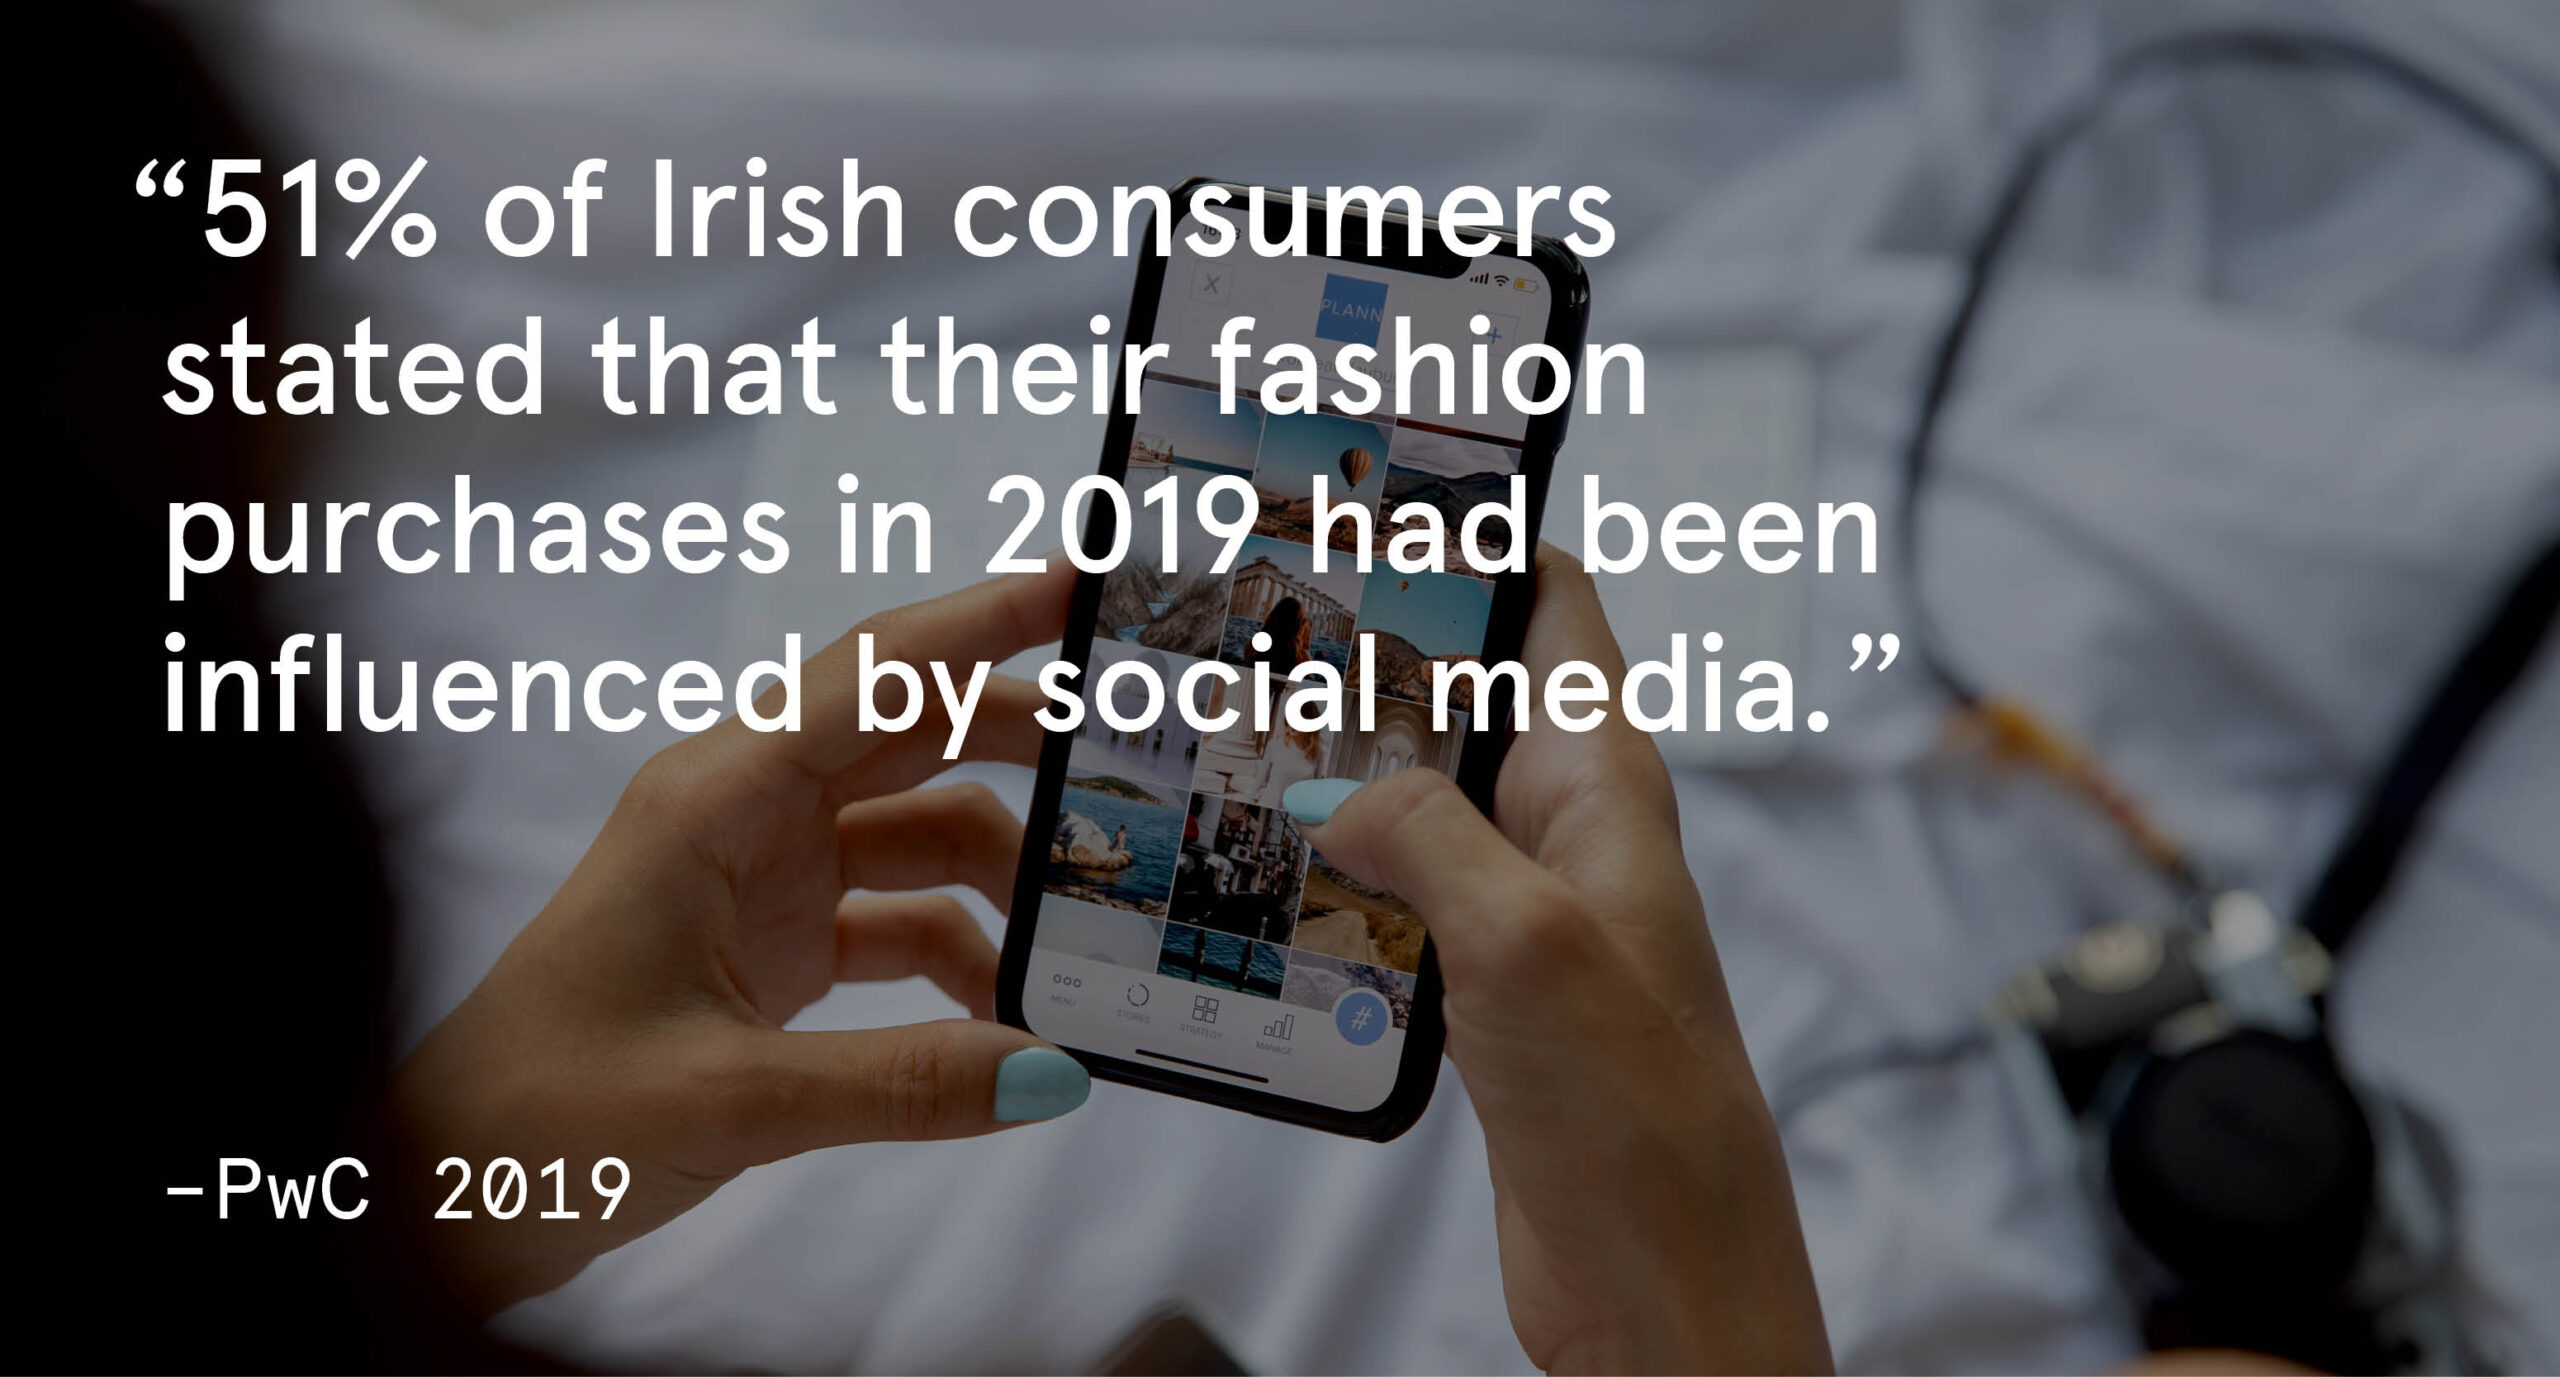 51% of Irish consumers stated that their fashion purchases in 2019 had been influenced by social media.